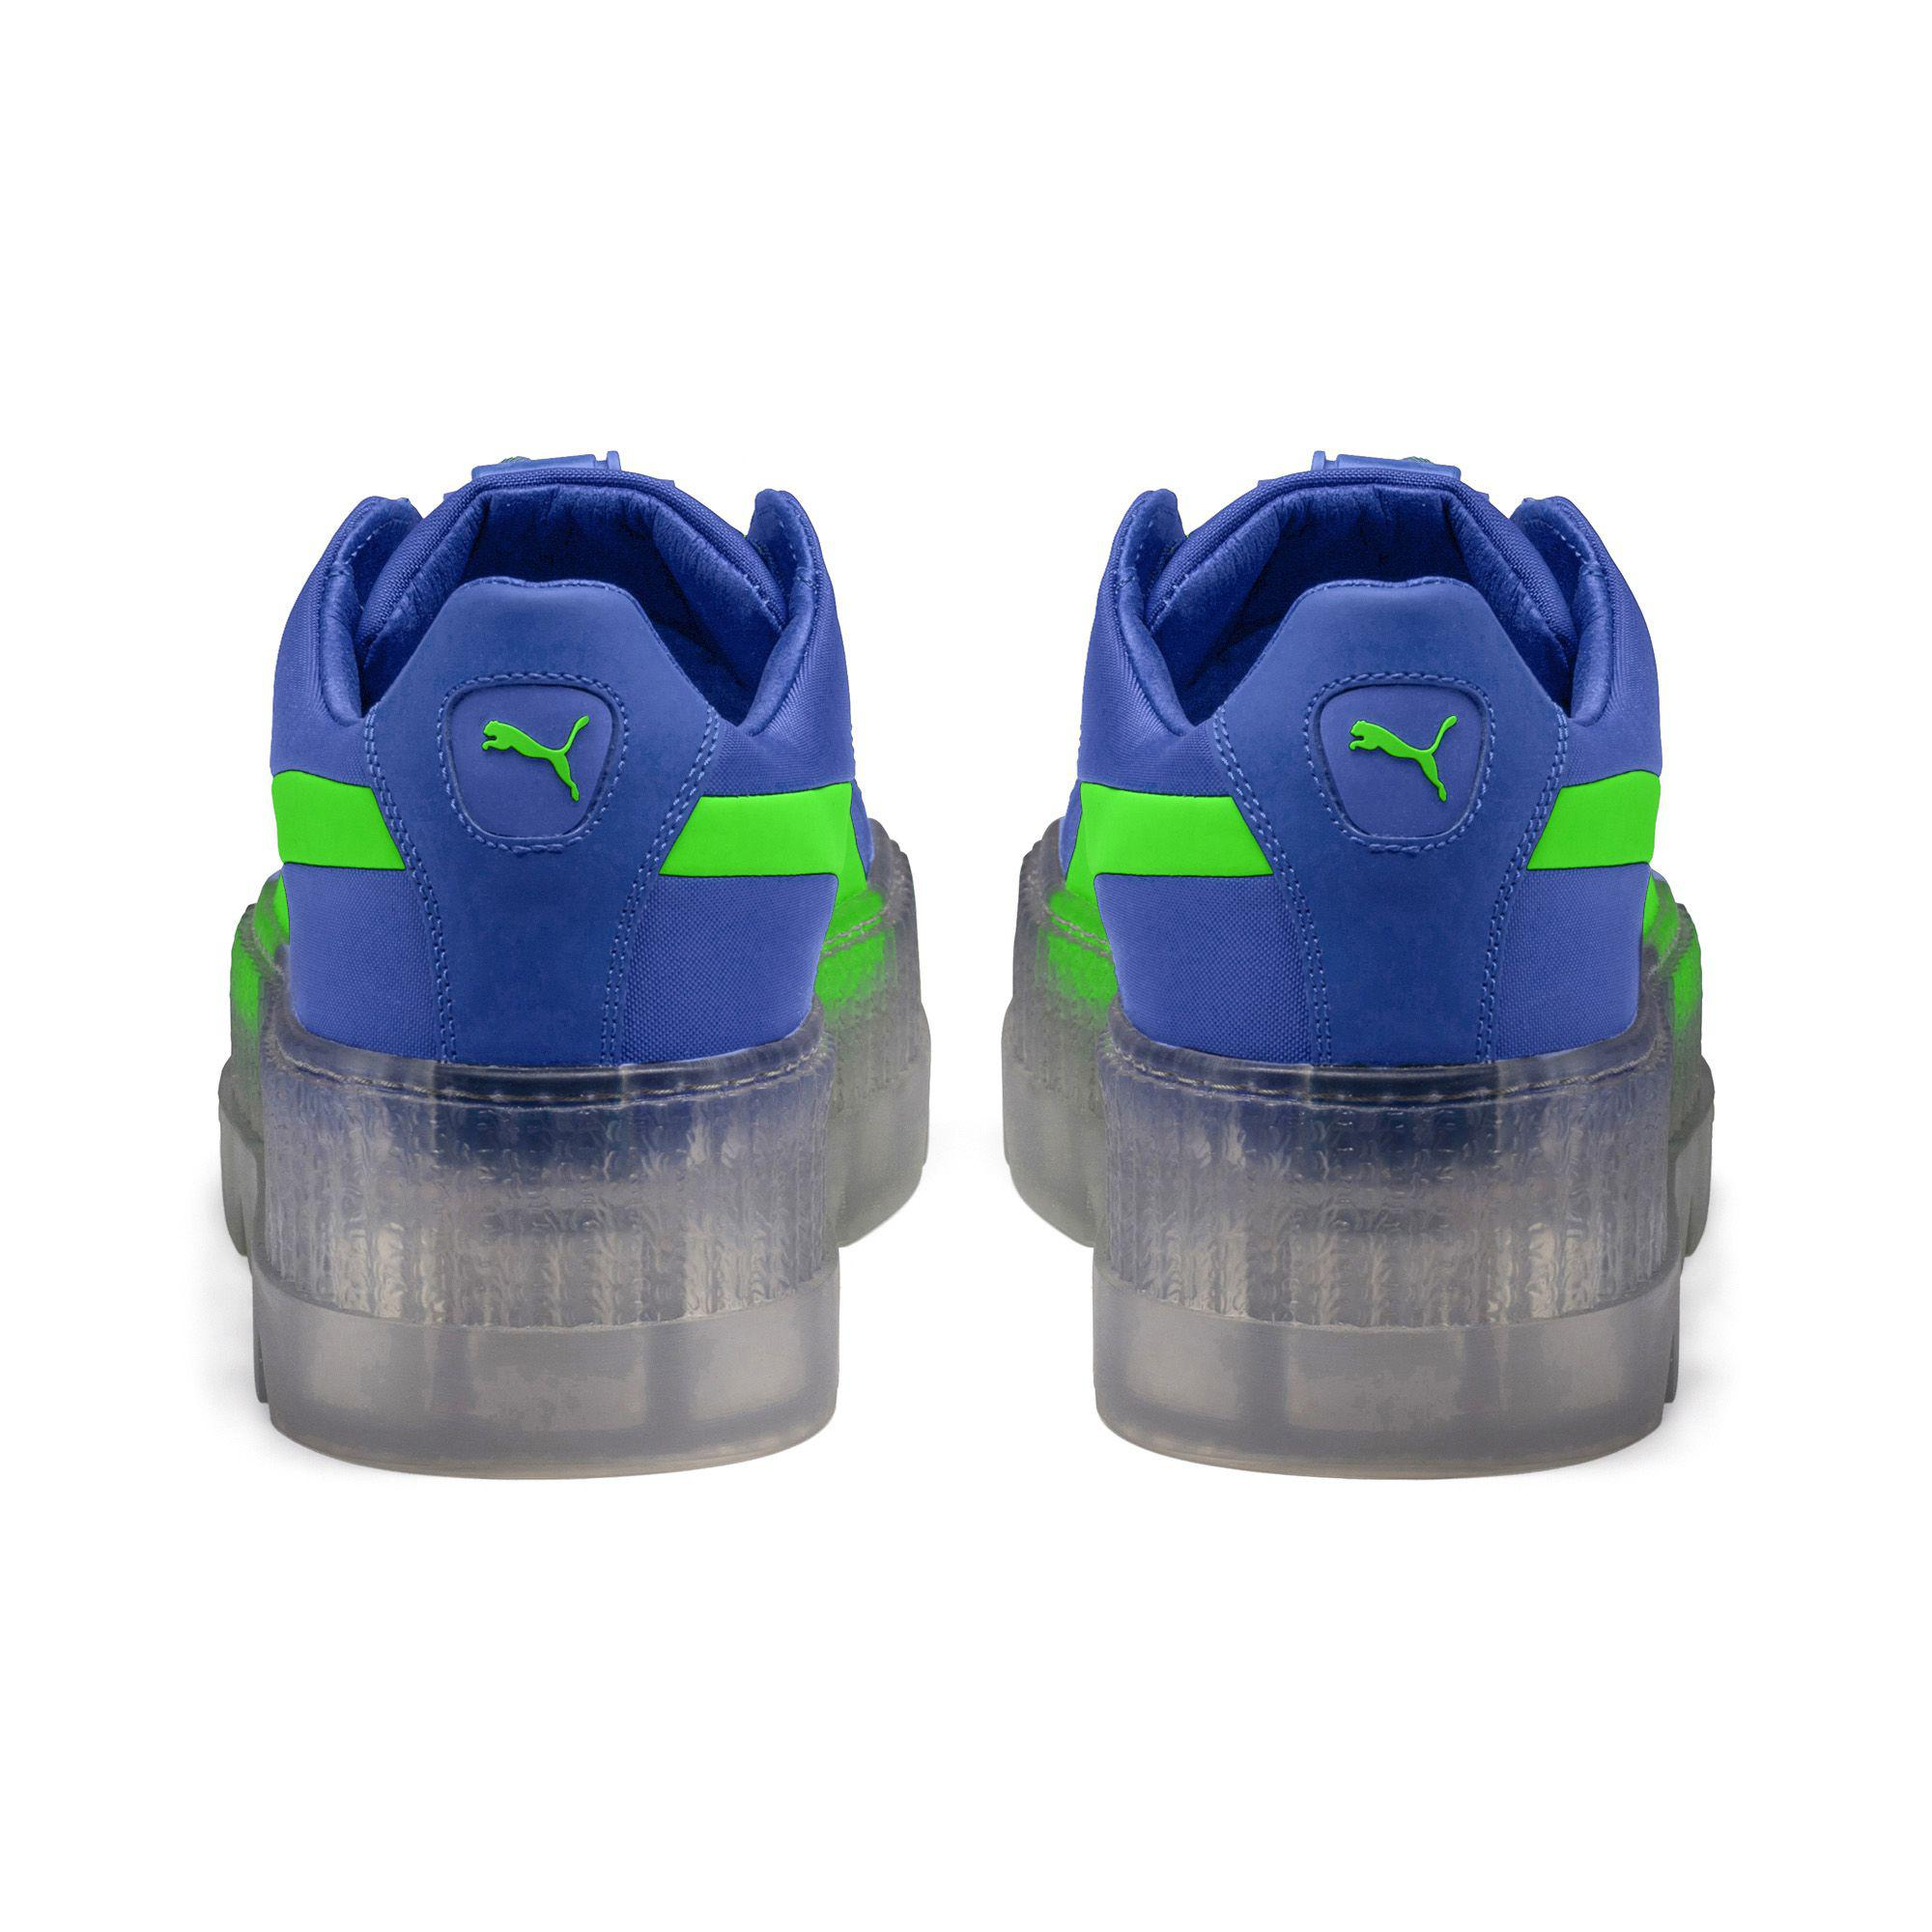 reputable site 16e8a 3bf03 Blue Fenty Unisex Cleated Creeper Surf